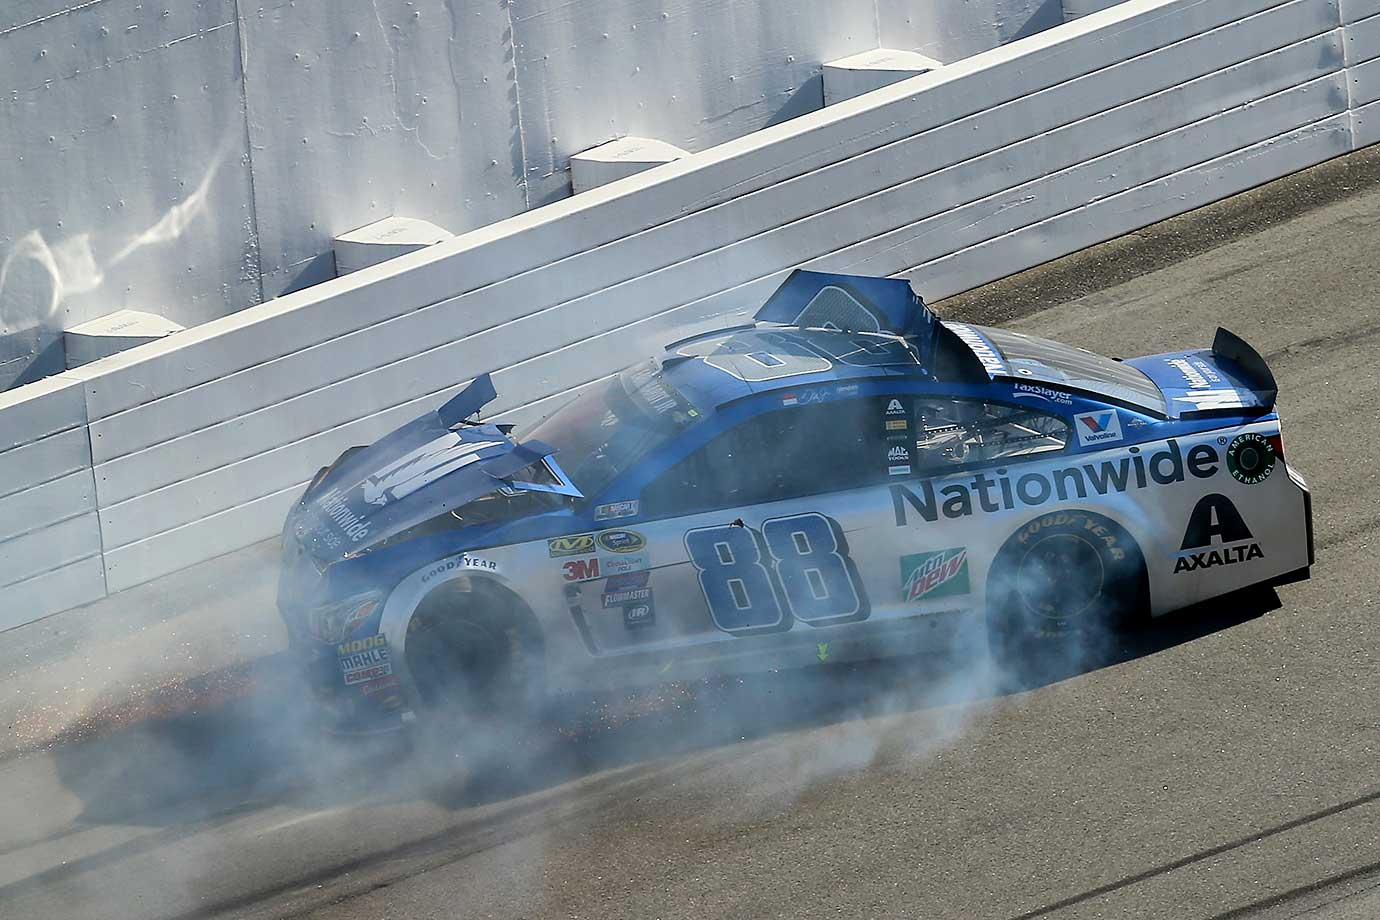 Dale Earnhardt Jr. hits the wall at the Daytona 500.